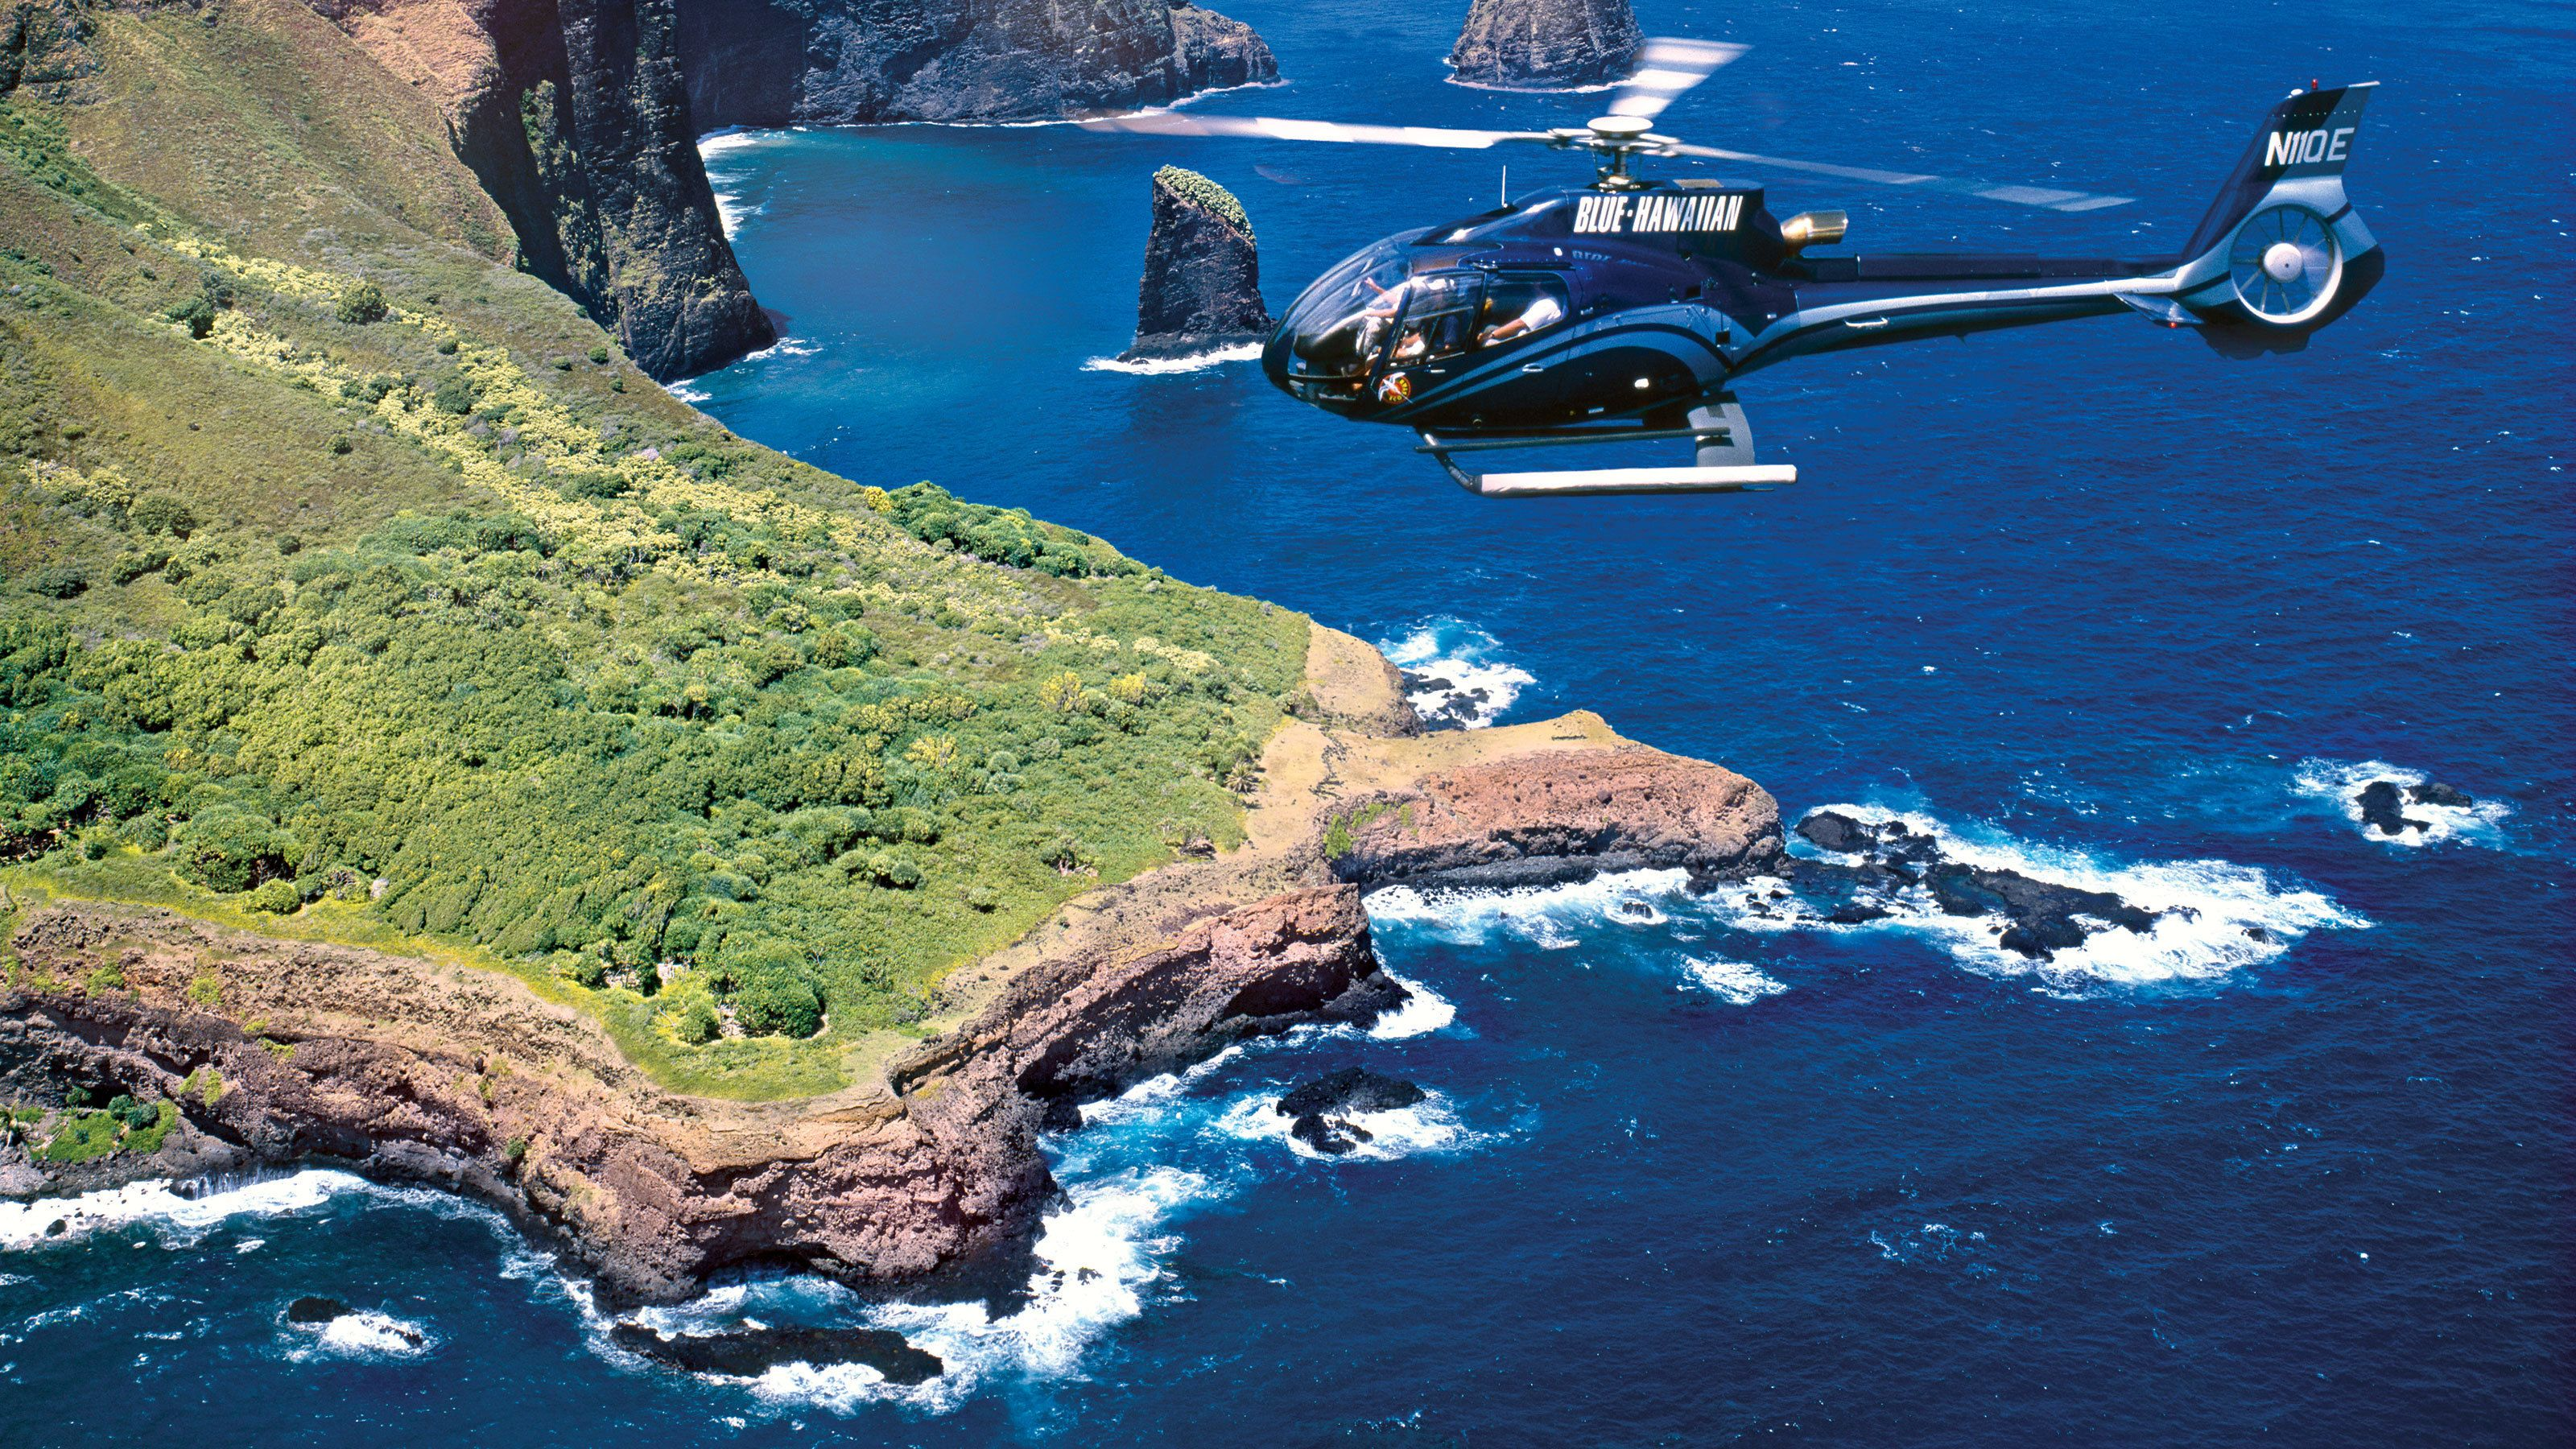 The Molokai Seacliffs Helicopter Tour in Maui